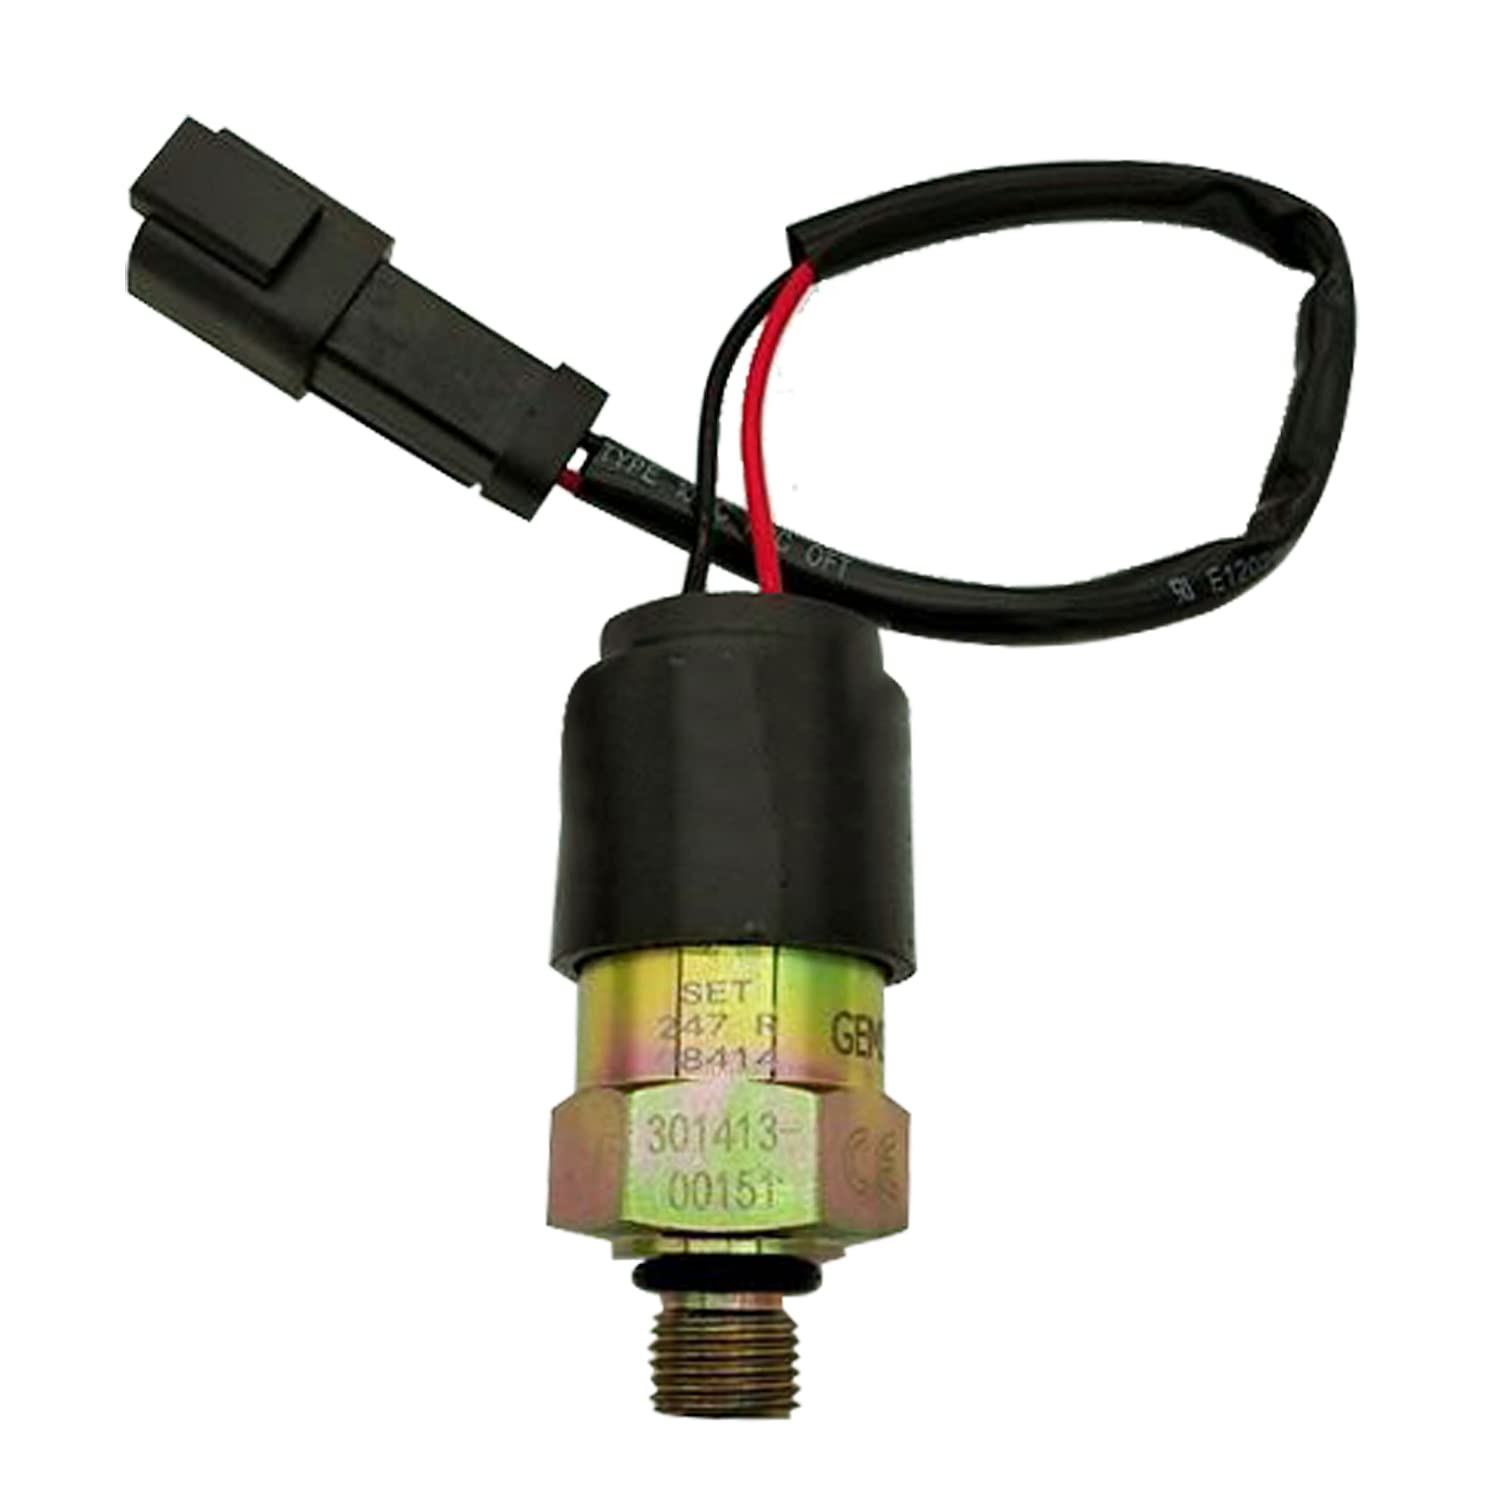 Jiayicity Sensor 301413-00151 30141300151 Indianapolis All stores are sold Mall Compat Switch Pressure